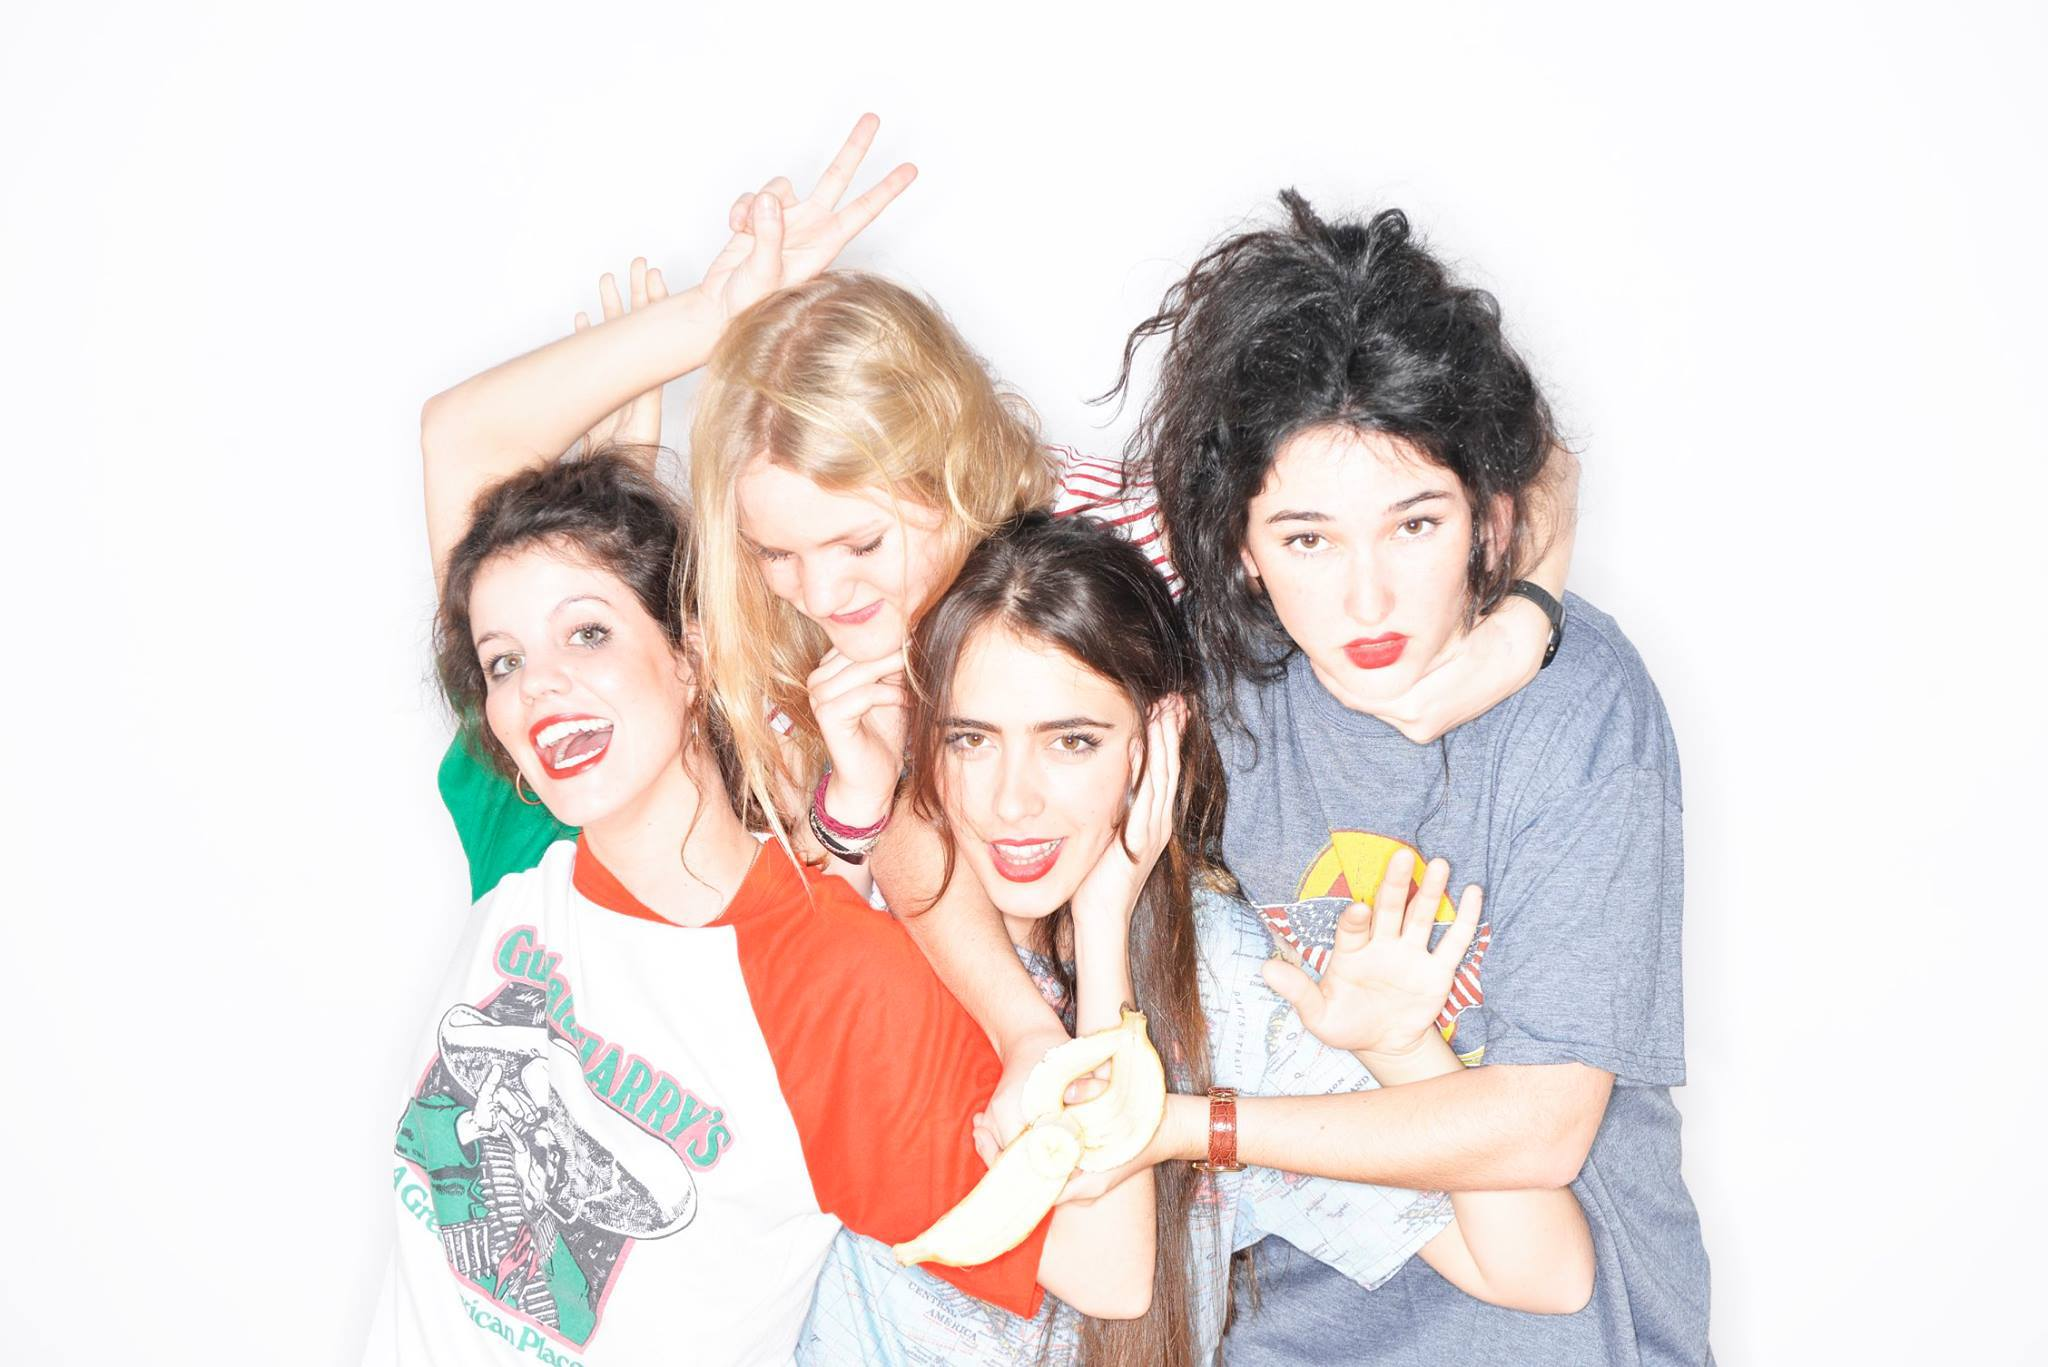 Live Review: Hinds // Music Hall of Williamsburg, New York City, 27.10.15